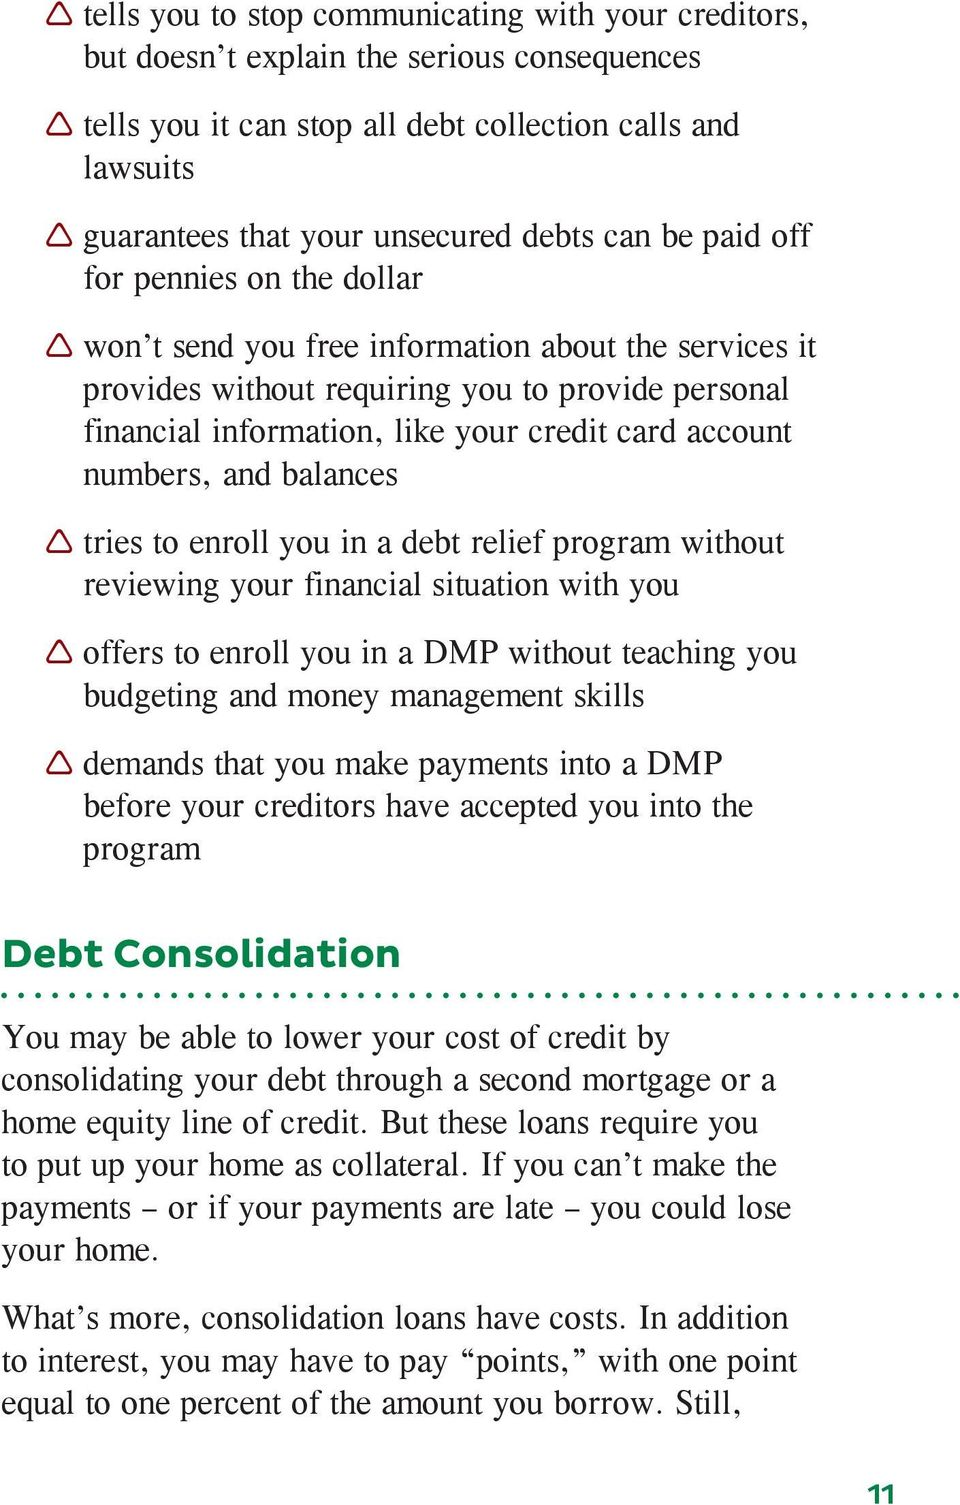 card account numbers, and balances Ì Ìtries to enroll you in a debt relief program without reviewing your financial situation with you Ì Ìoffers to enroll you in a DMP without teaching you budgeting